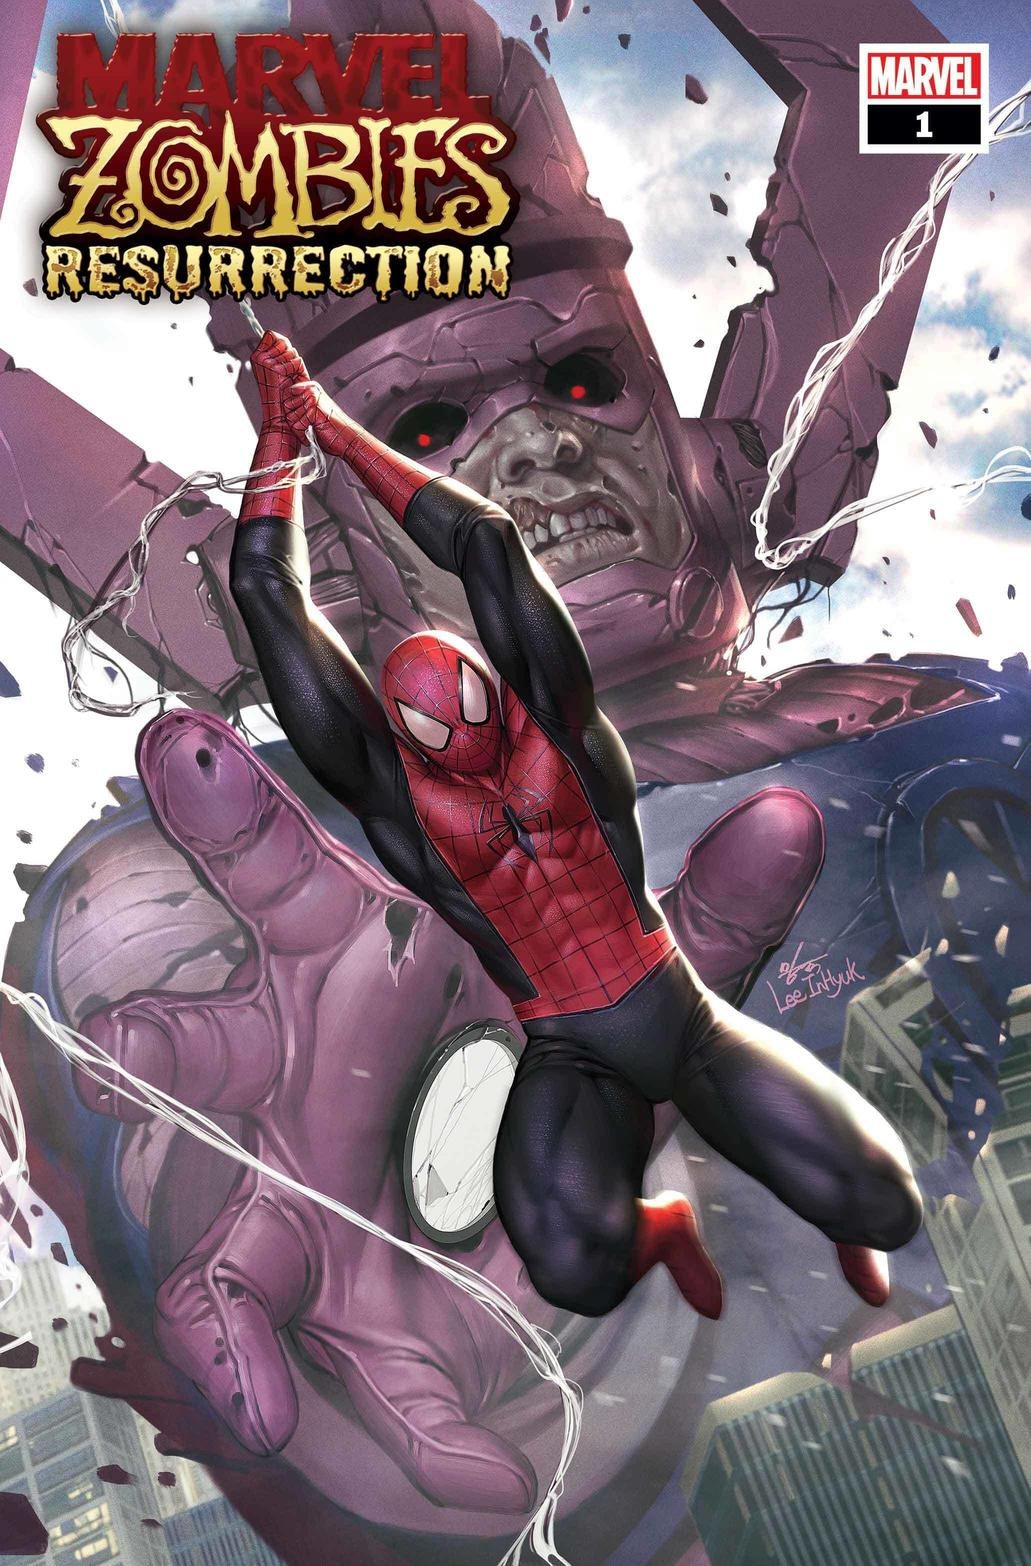 MARVEL ZOMBIES RESURRECTION #1 WRITTEN BY PHILLIP KENNEDY JOHNSON, ART BY LEONARD KIRK, COVERS BY INHYUK LEE